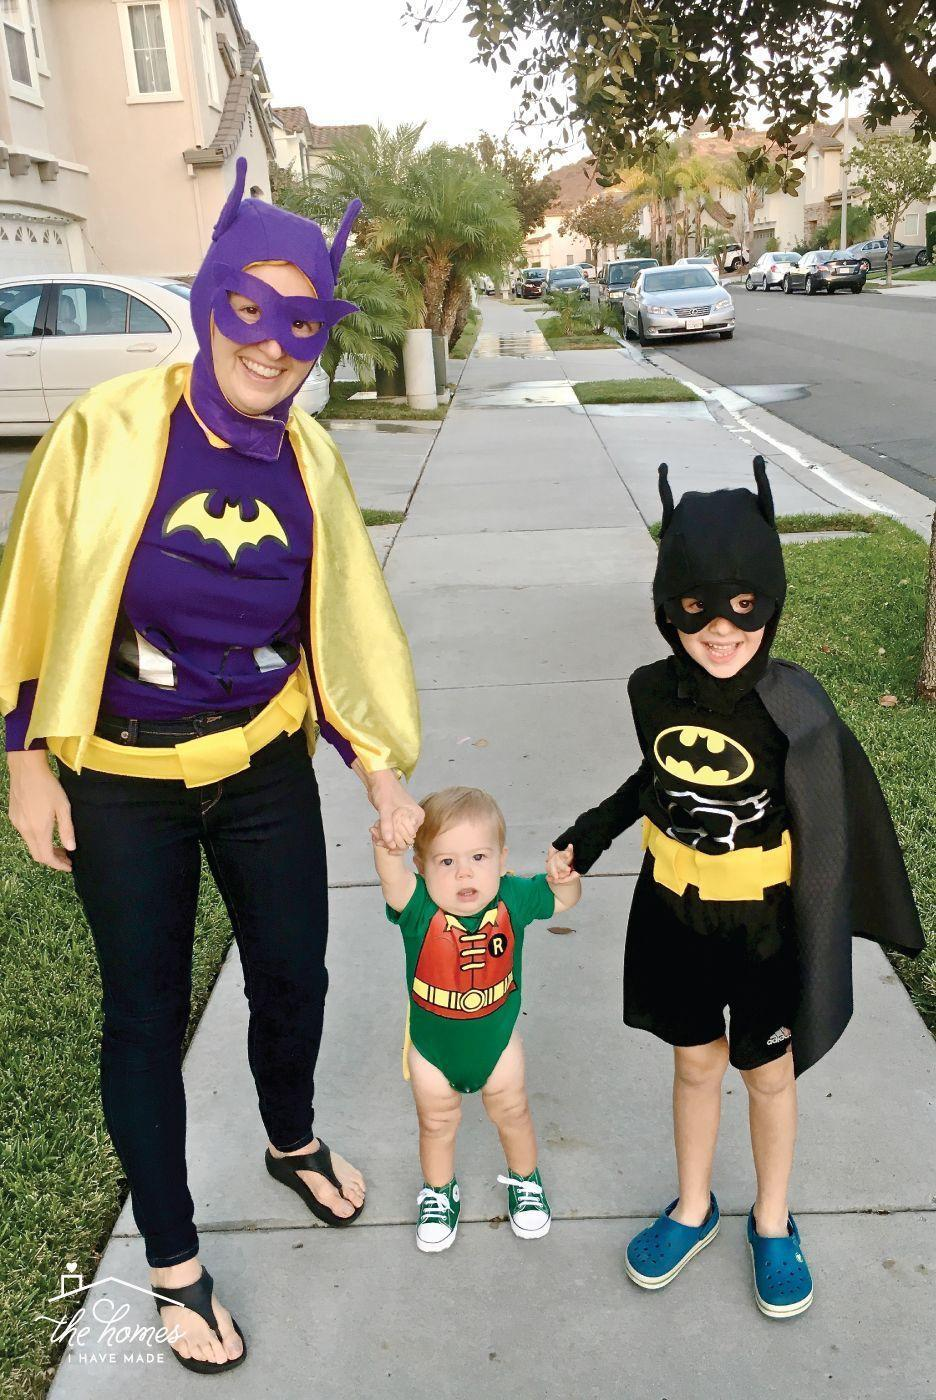 """<p>Save the day in these classic superhero-inspired outfits. This idea works well for all ages, but if you can recruit a Robin as tiny as this one, you're in for an even more adorable ensemble. </p><p><strong>Get the tutorial at <a href=""""https://thehomesihavemade.com/2018/10/lego-batman-costume-with-batgirl-robin-too/"""" rel=""""nofollow noopener"""" target=""""_blank"""" data-ylk=""""slk:The Homes I Have Made"""" class=""""link rapid-noclick-resp"""">The Homes I Have Made</a>.</strong></p><p><a class=""""link rapid-noclick-resp"""" href=""""https://go.redirectingat.com?id=74968X1596630&url=https%3A%2F%2Fwww.walmart.com%2Fsearch%2F%3Fquery%3Diron%2Bon%2Bvinyl&sref=https%3A%2F%2Fwww.thepioneerwoman.com%2Fhome-lifestyle%2Fcrafts-diy%2Fg37066817%2Fhalloween-costumes-for-3-people%2F"""" rel=""""nofollow noopener"""" target=""""_blank"""" data-ylk=""""slk:SHOP IRON-ON VINYL"""">SHOP IRON-ON VINYL</a></p>"""